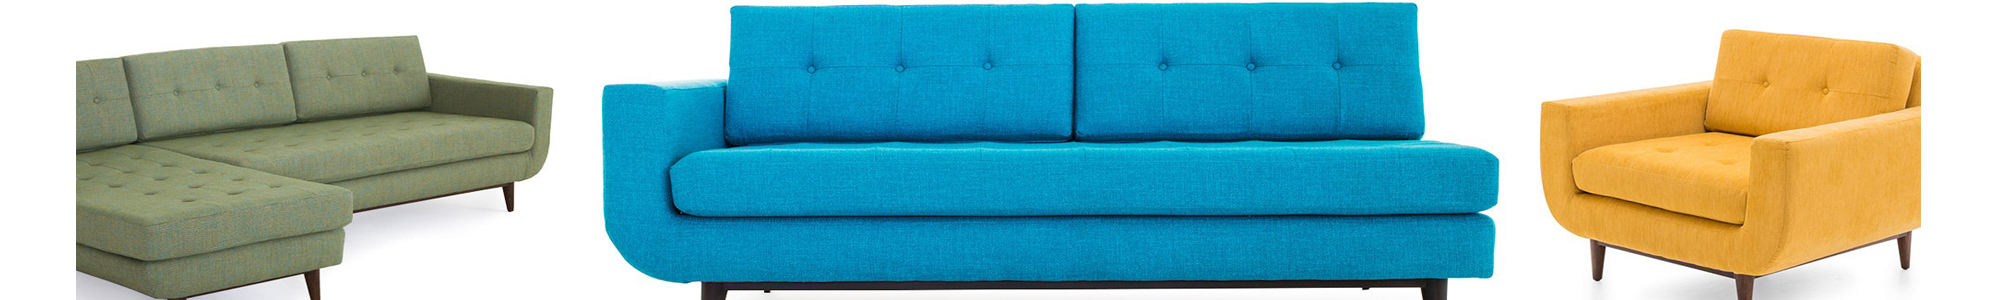 Sectional & L-Shaped Sofas